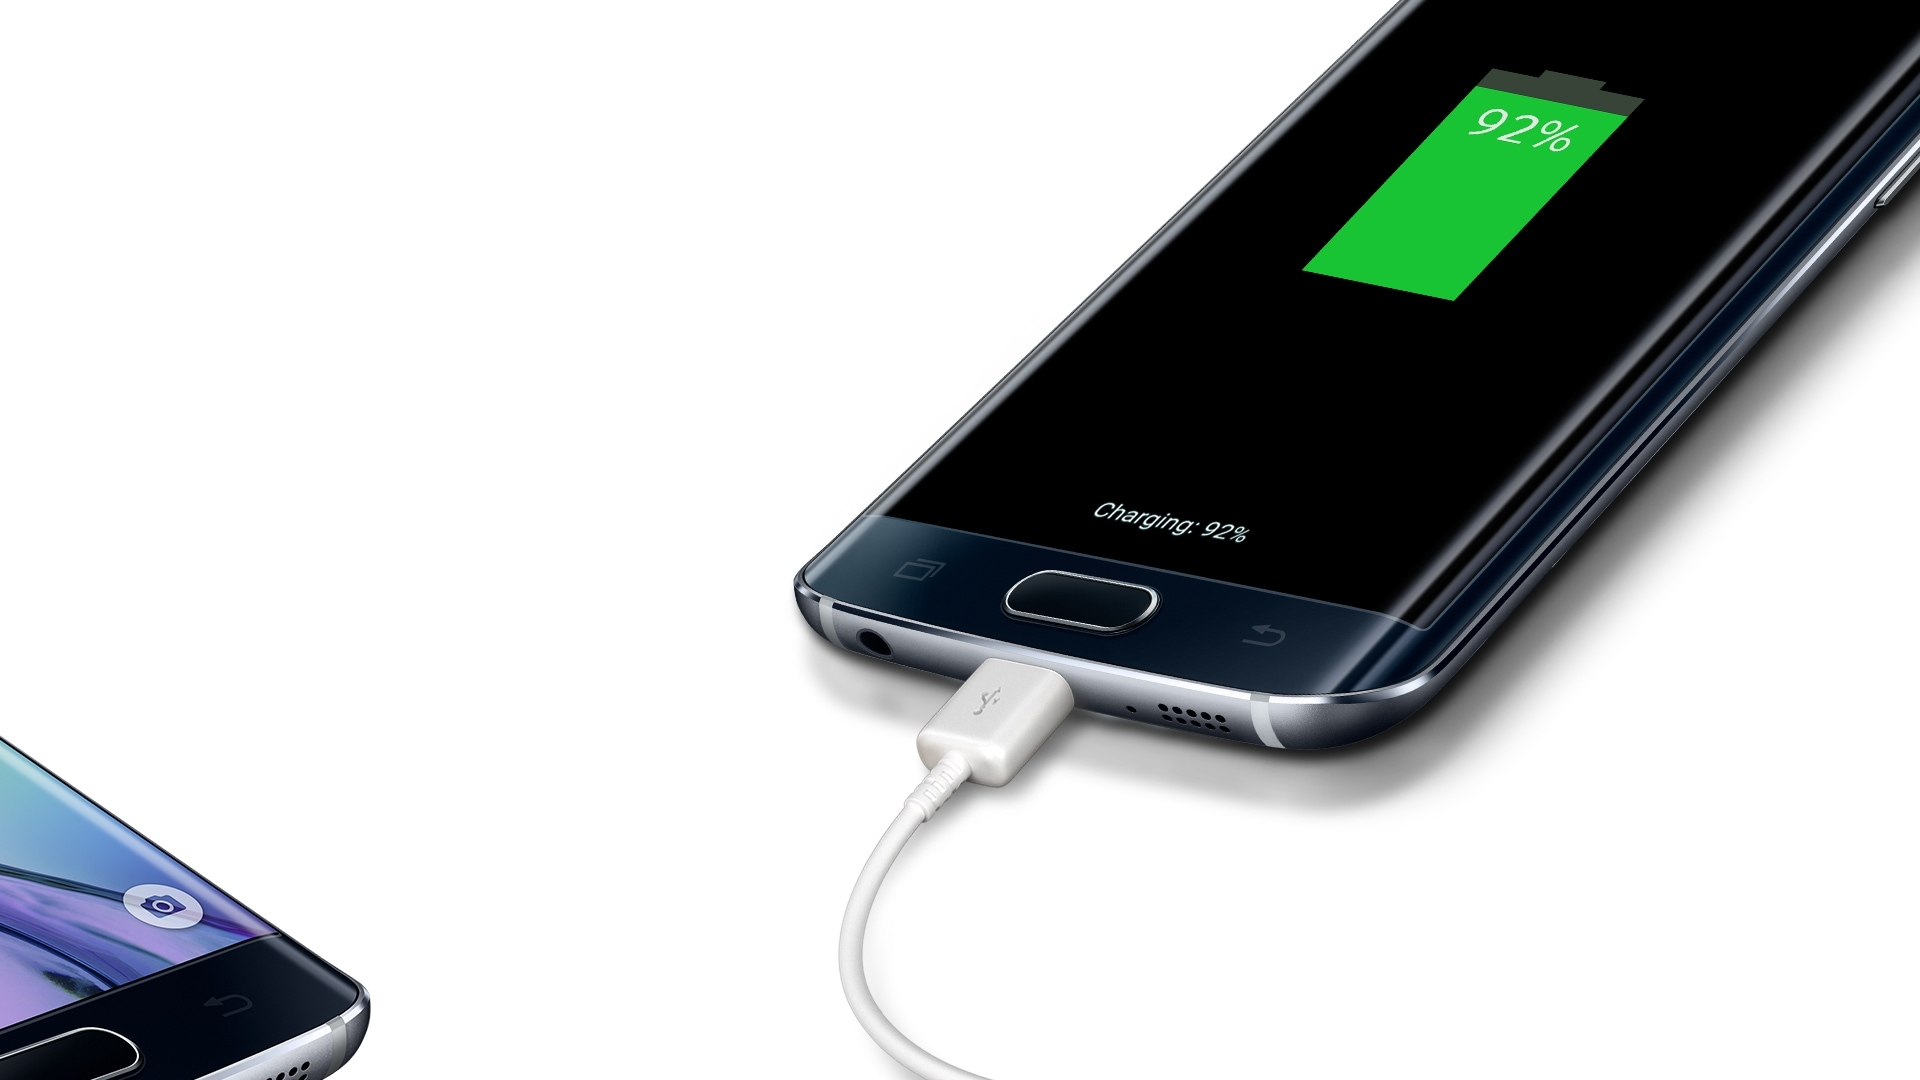 Photo du Galaxy S6 edge en cours de charge.